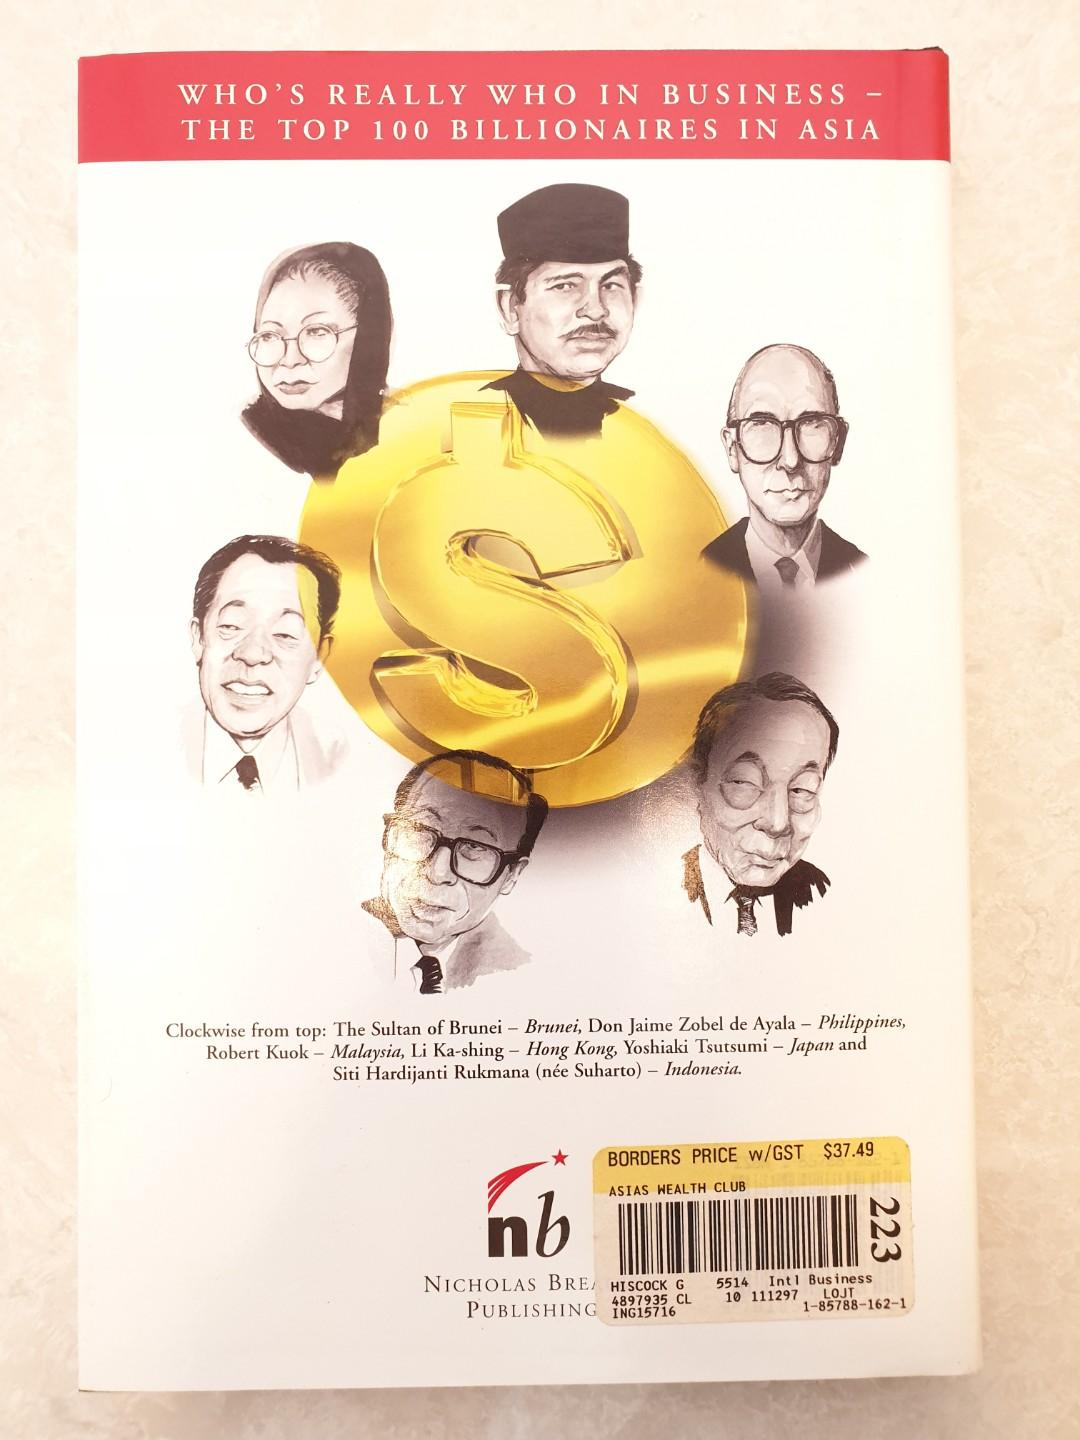 ASIA'S WEALTH CLUB, Who's Really Who in Asia, The Top 100 Billionaires in Asia, Hardcopy